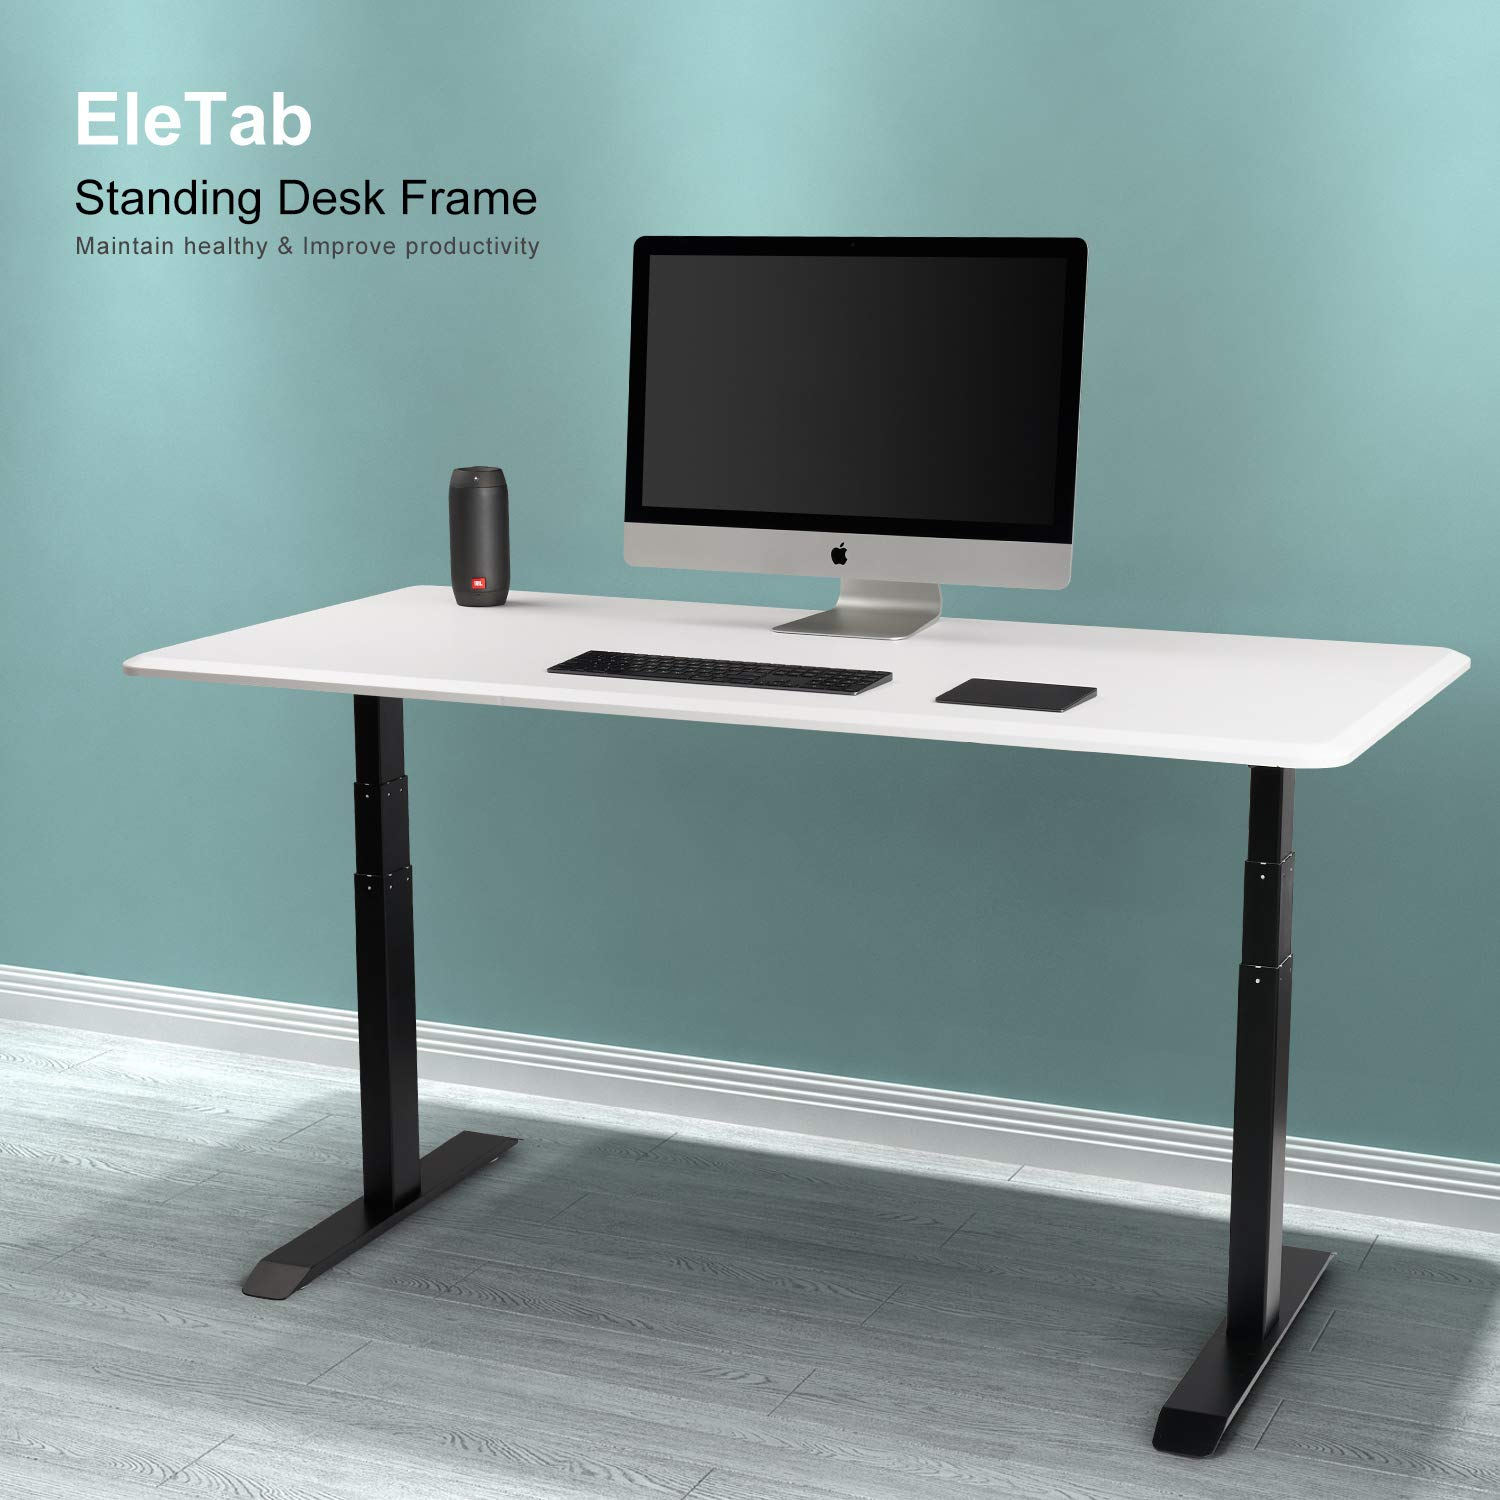 Electric Stand up Desk Frame – EleTab Dual Motor Height Adjustable Ergonomic Sit Stand Desk Base Workstation with 3 Stage Up Lifting Legs Black Frame only